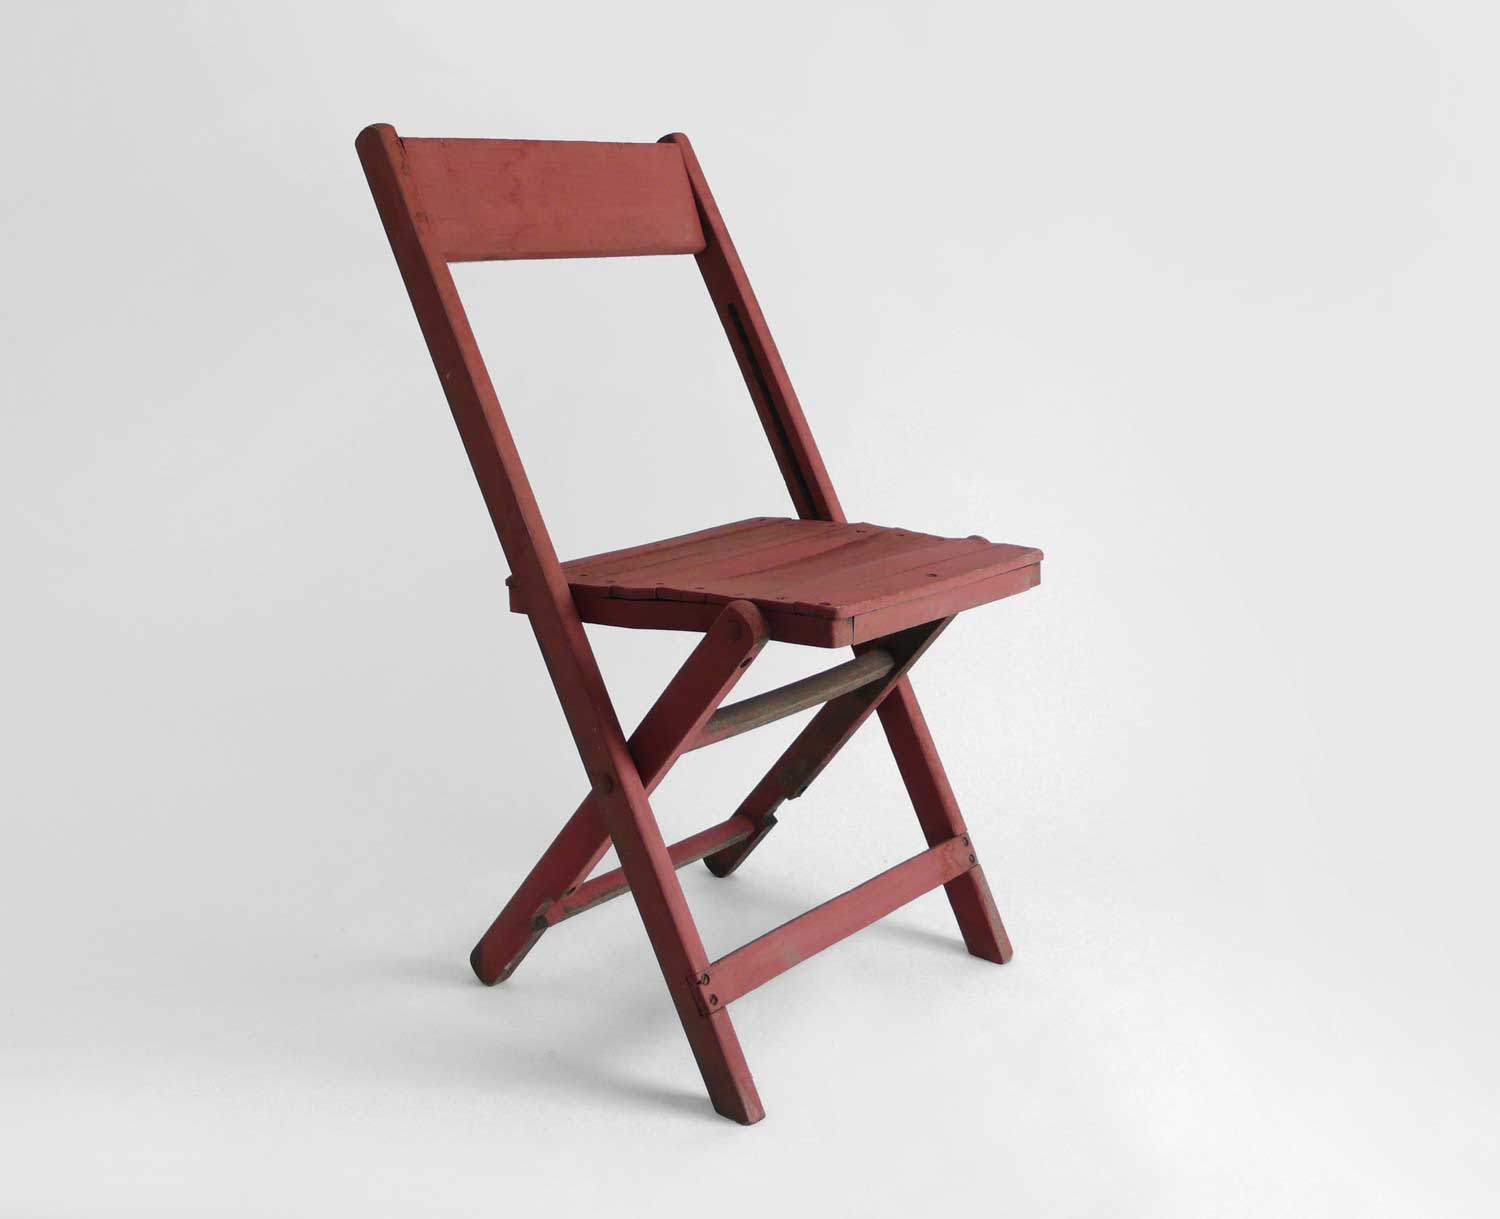 Wooden Folding Chairs Advantages